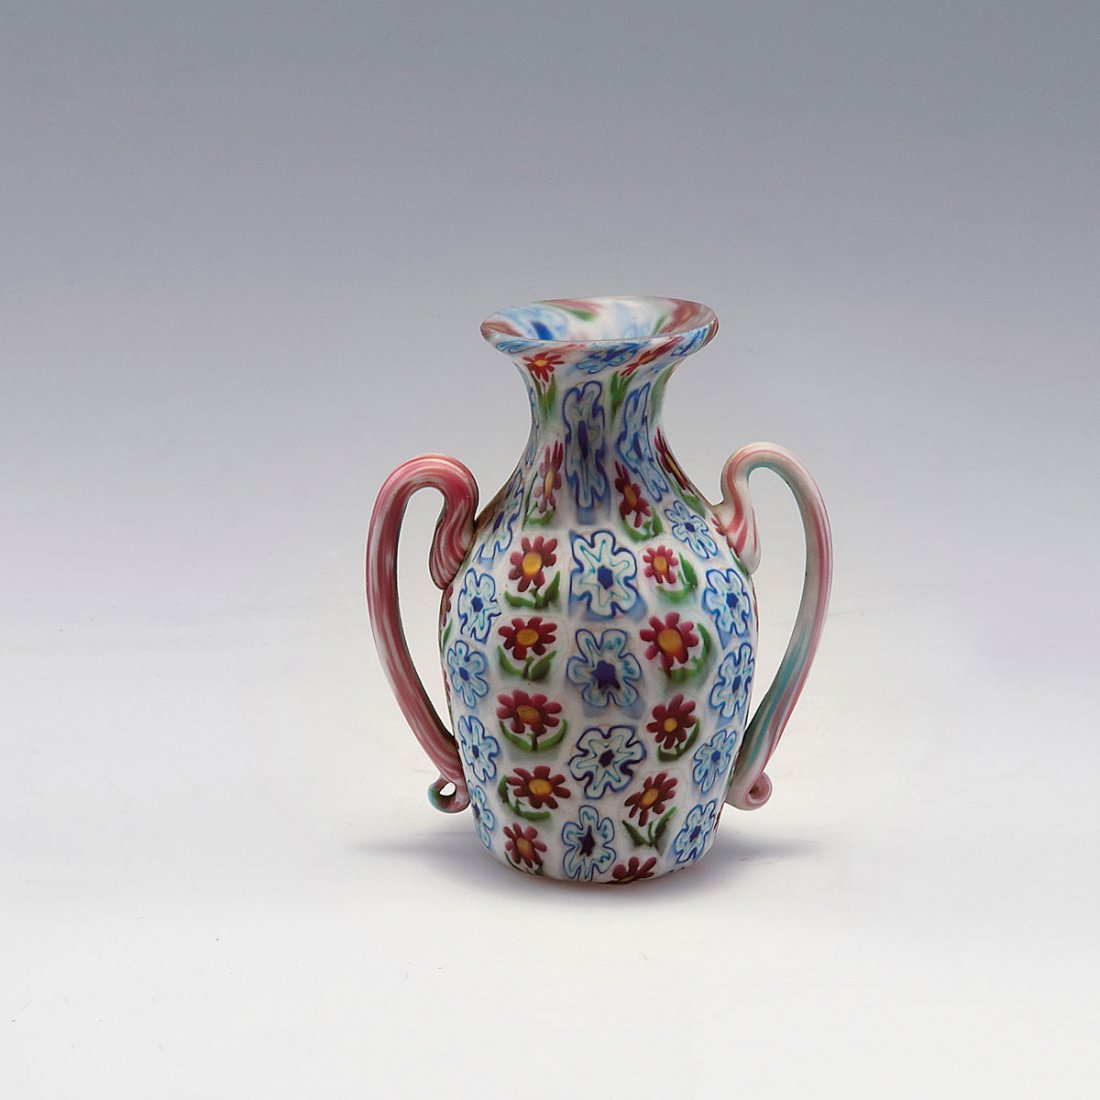 Small 'Murrine vase with handles